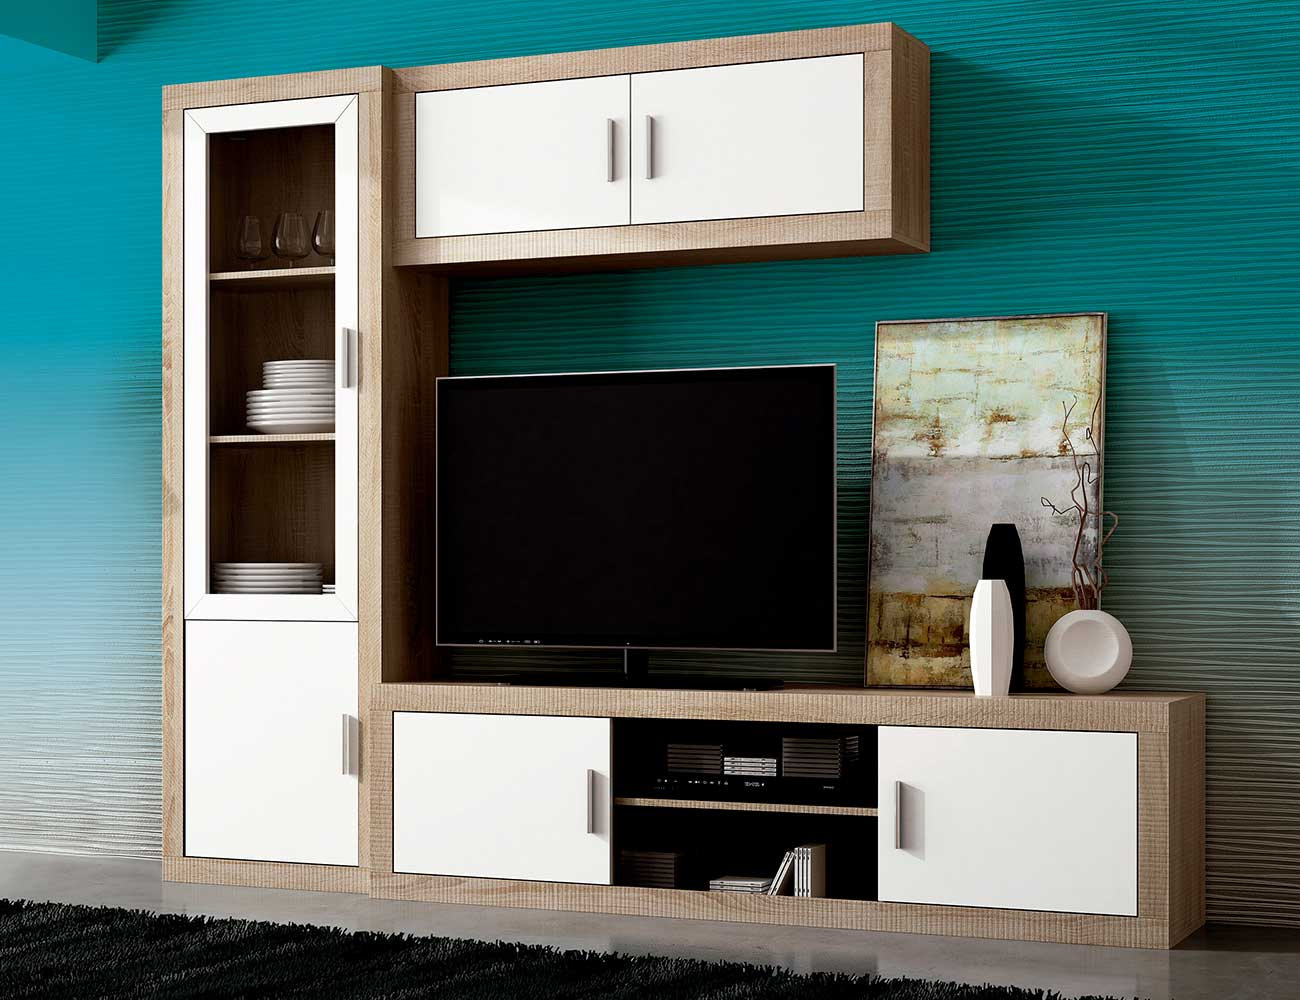 Mueble de sal n estilo moderno color cambrian blanco 240 for Mueble salon blanco y madera